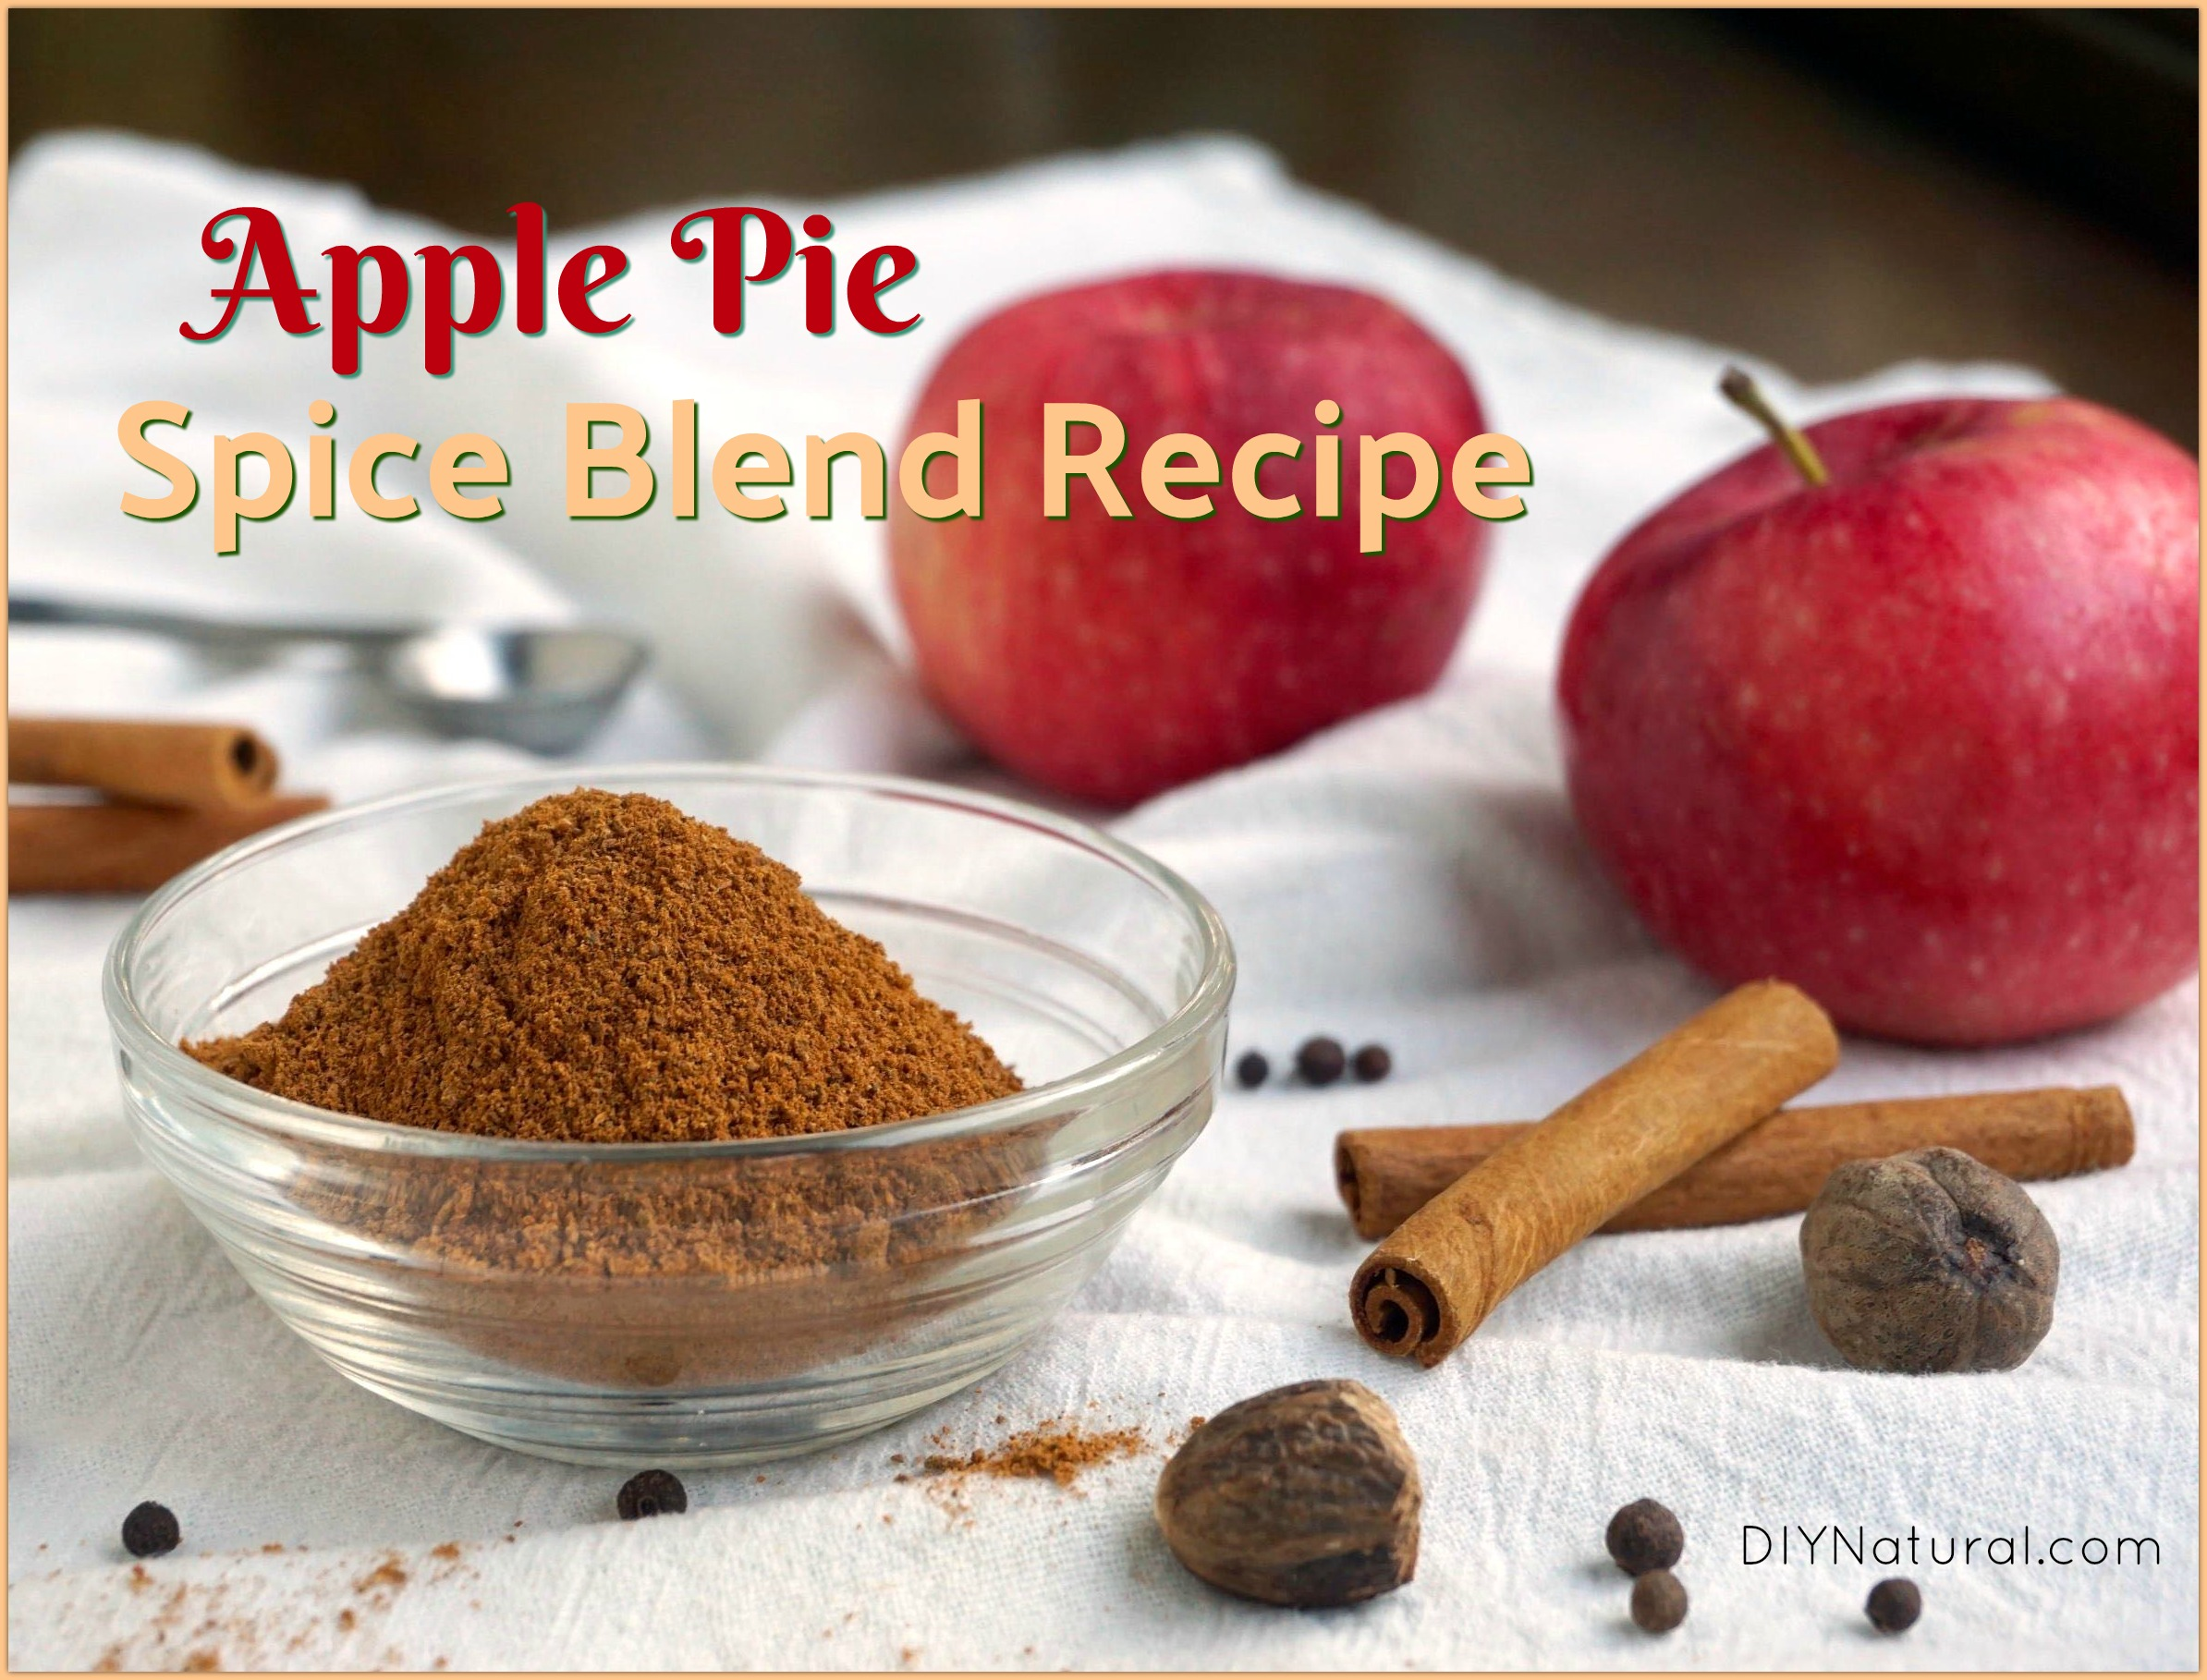 Apple Pie Spice Recipe: Learn to Make Your Own Apple Pie Spice